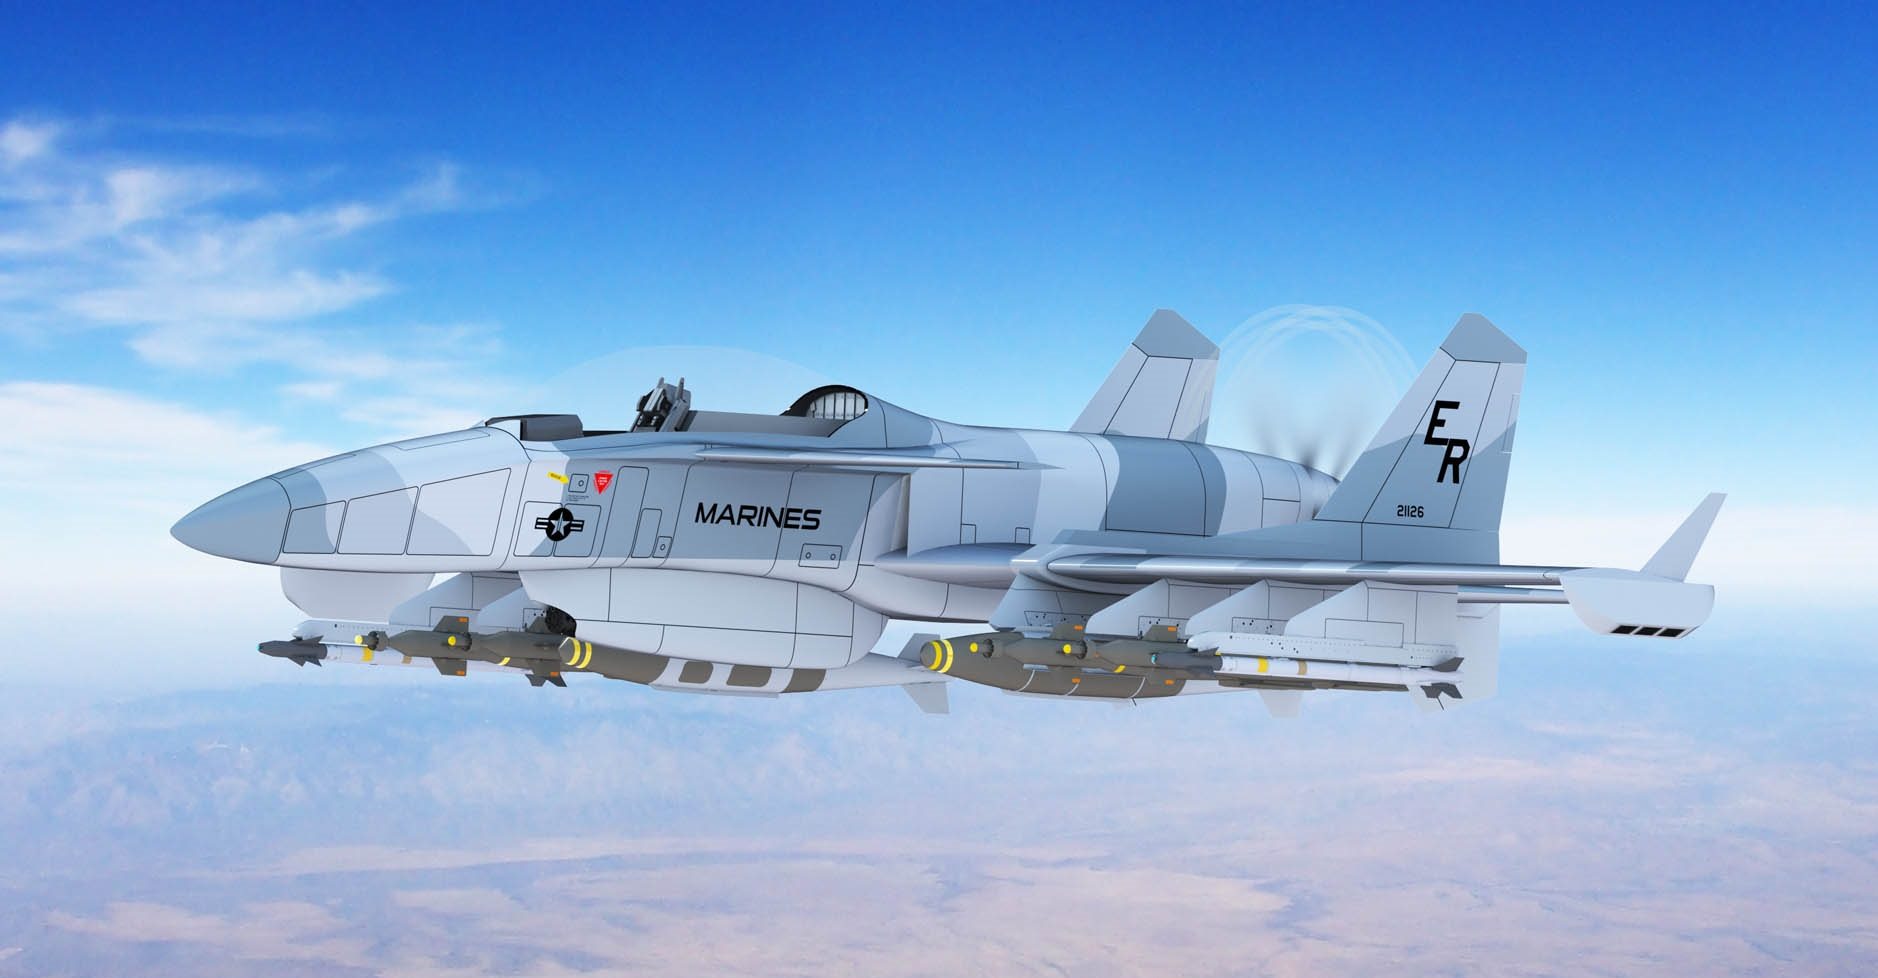 The Machete: The Super Plane That Could Replace the A-10 Warthog (Or Not)?